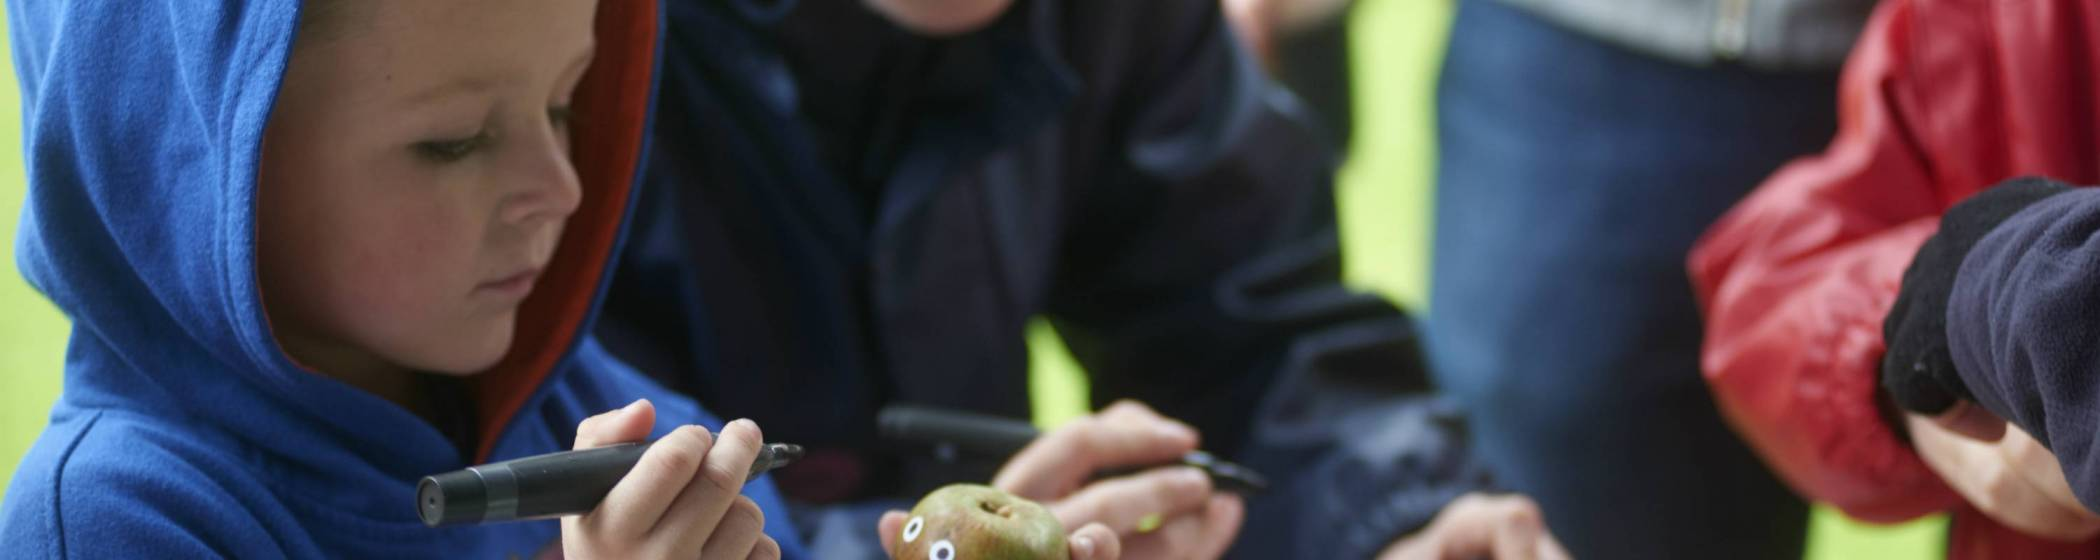 Children taking part in crafts with organic materials at a National Trust property